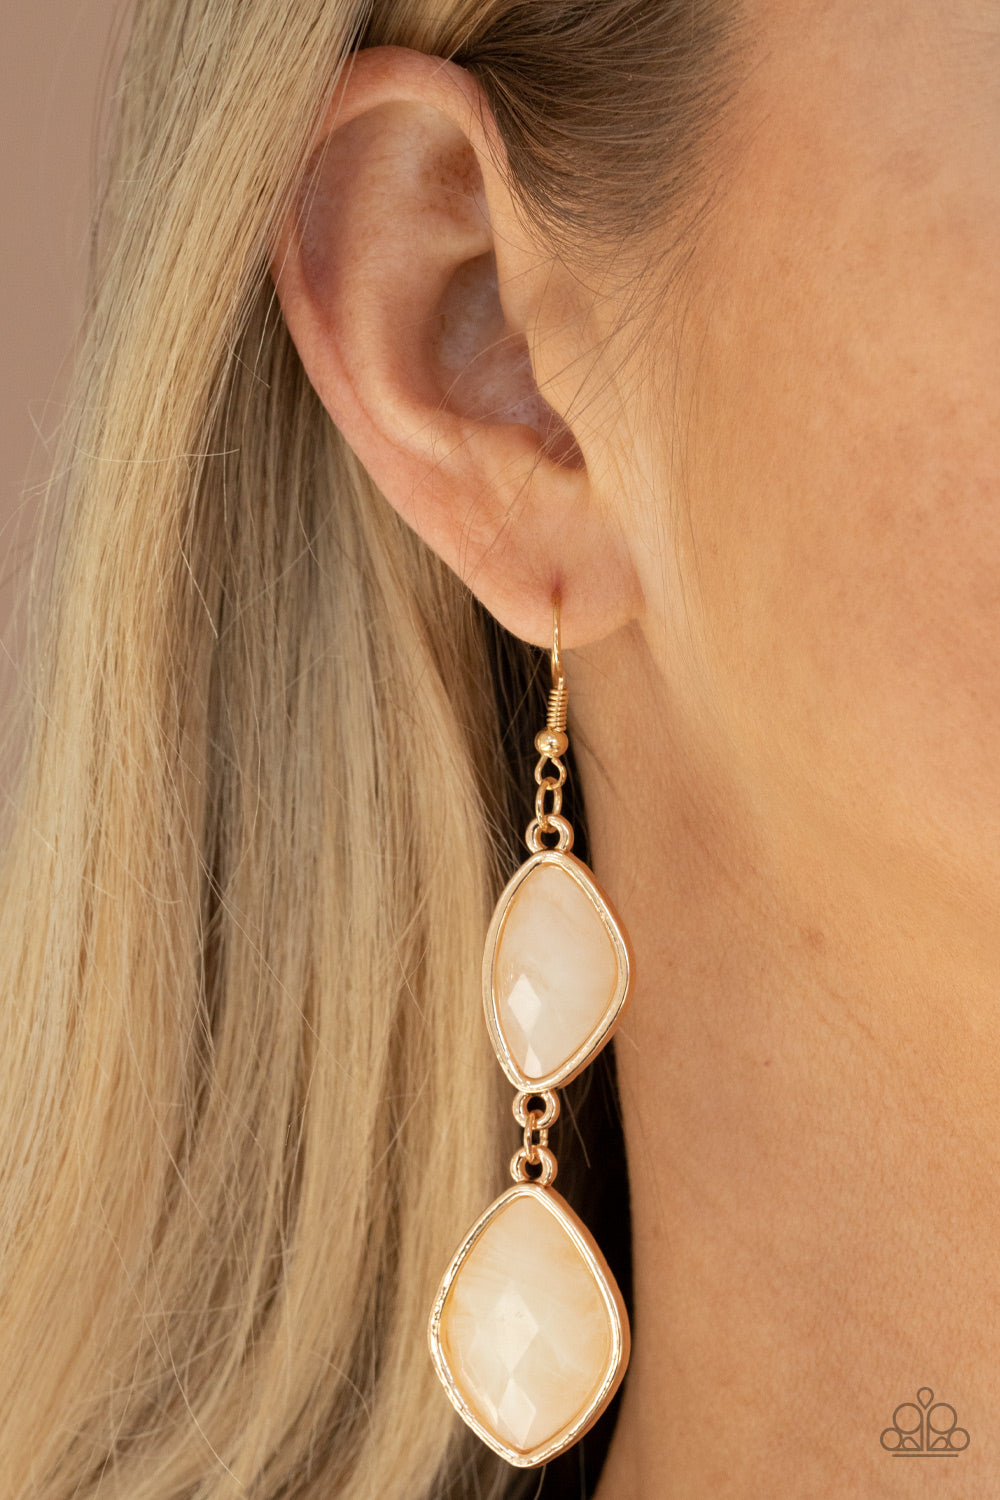 The Oracle Has Spoken - Gold Earrings